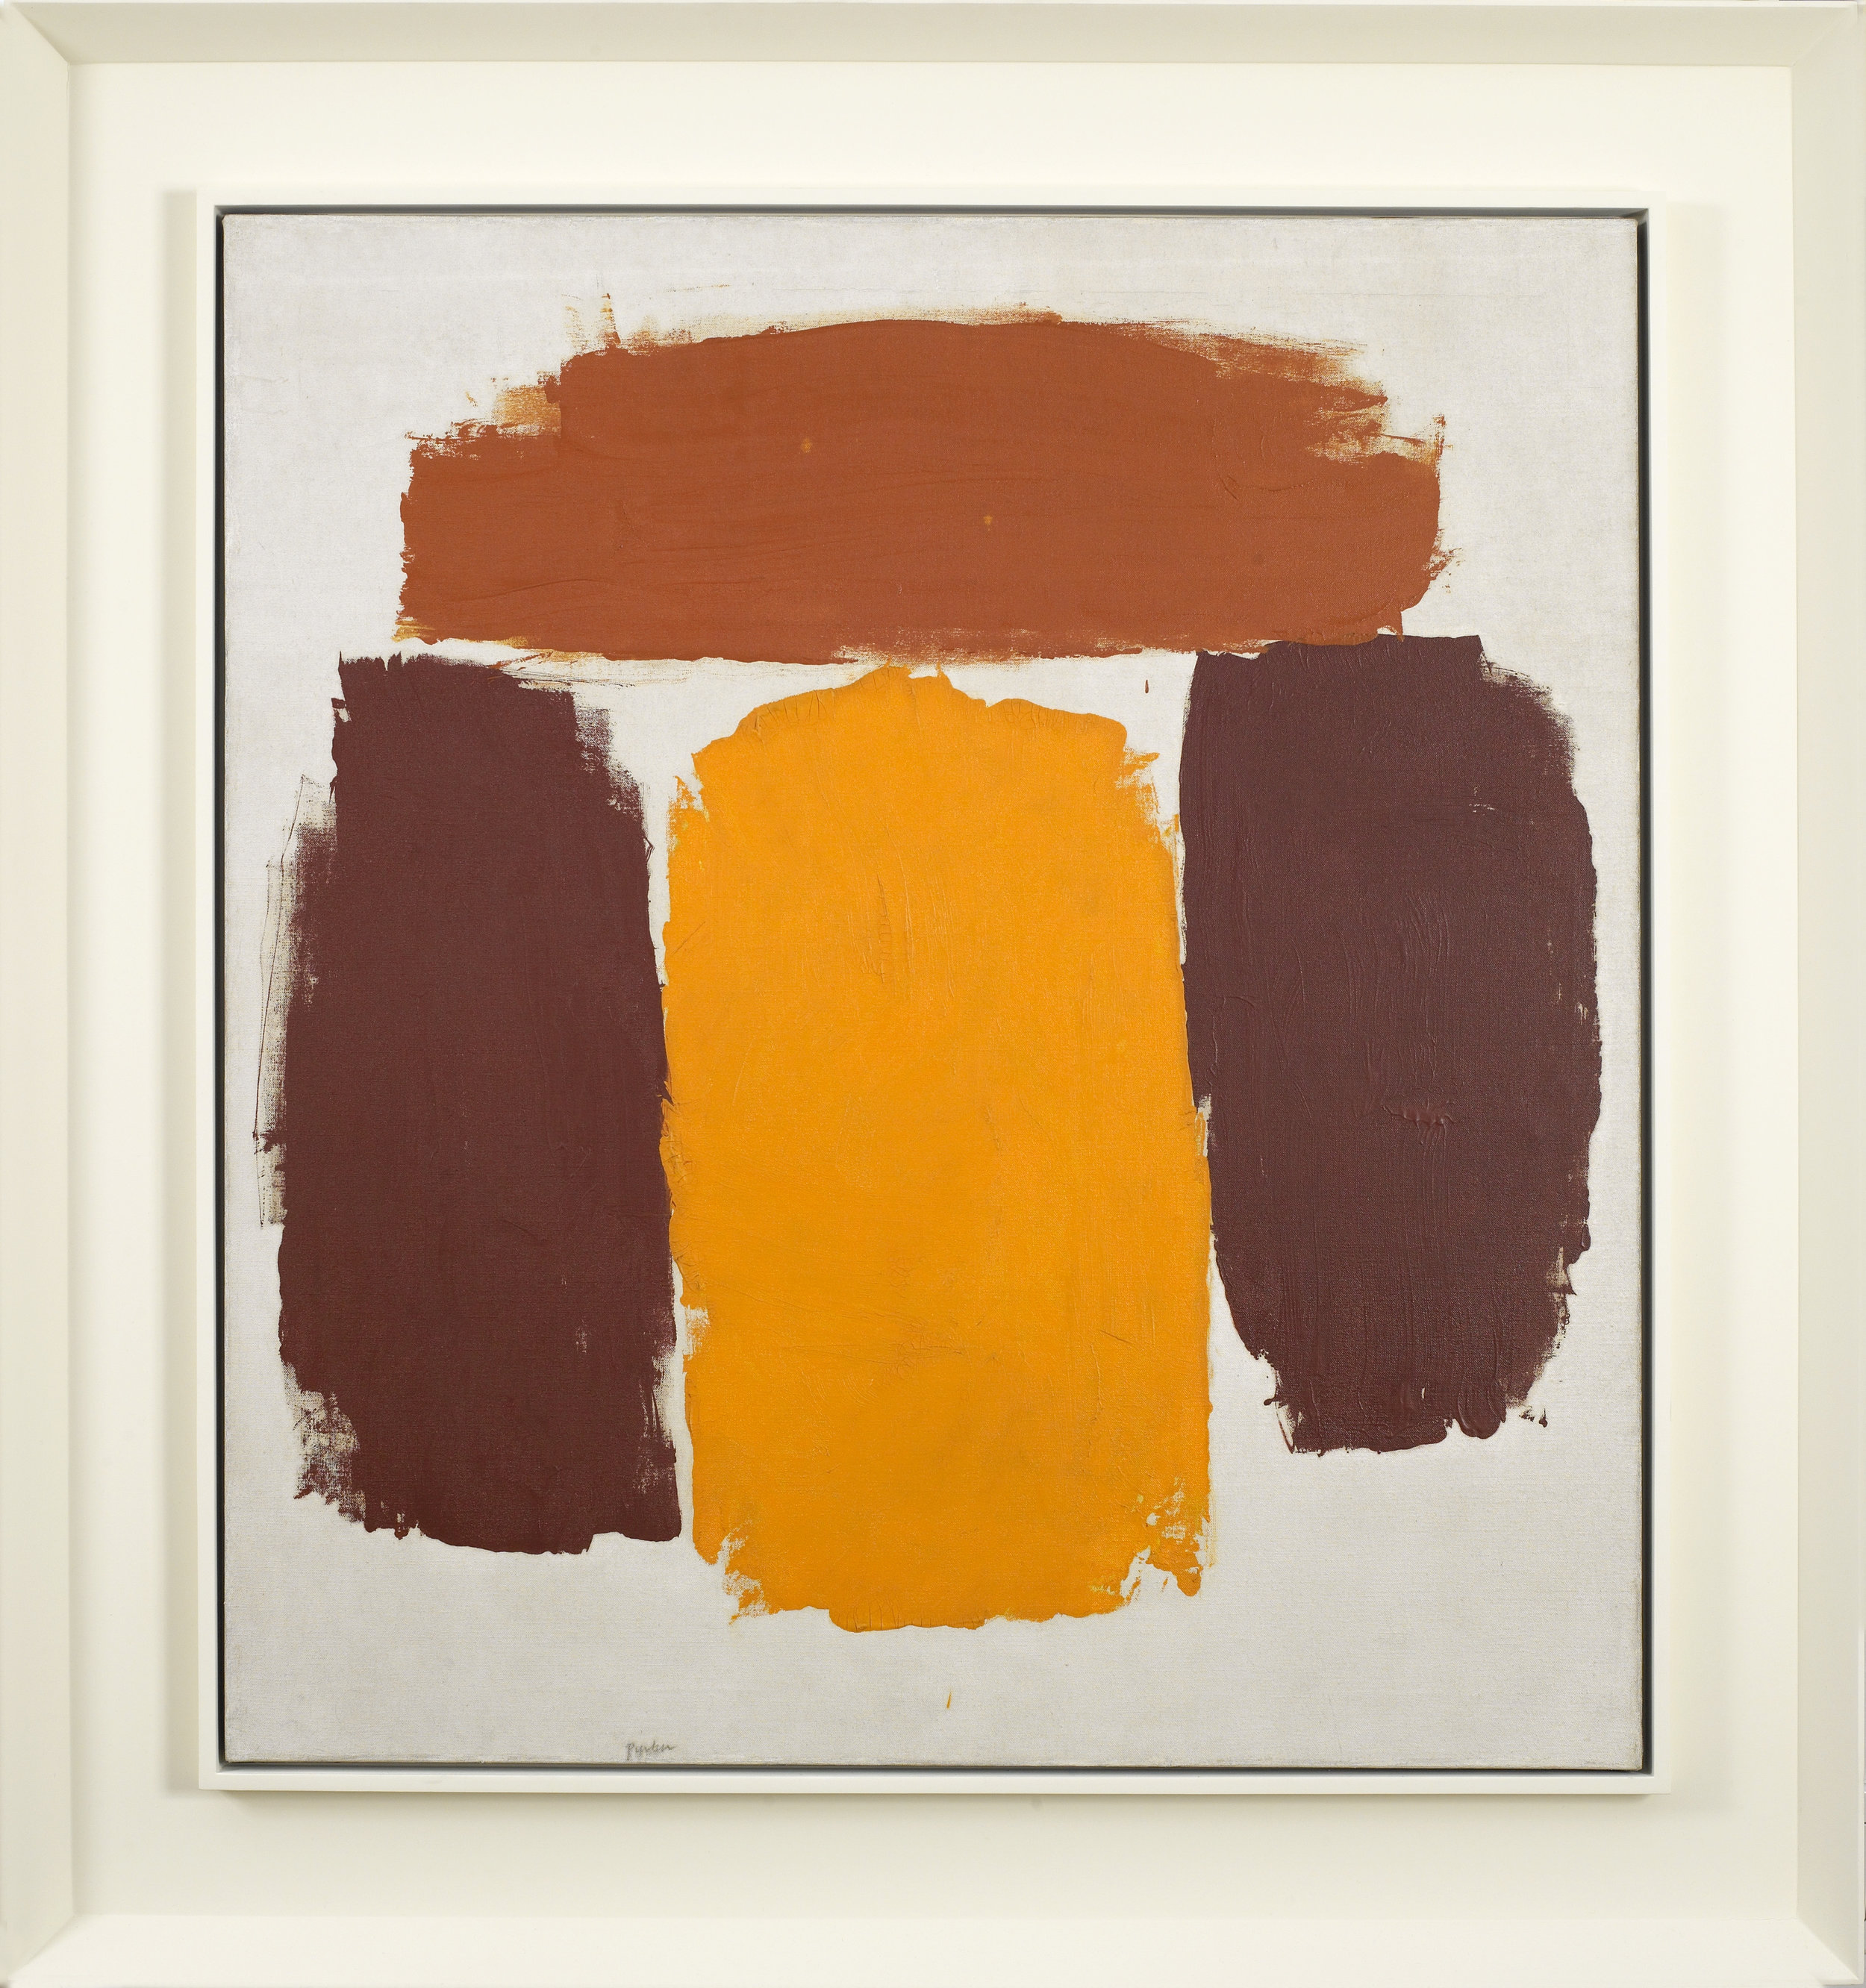 Untitled, 1963 , Oil on canvas, 34 x 31 inches